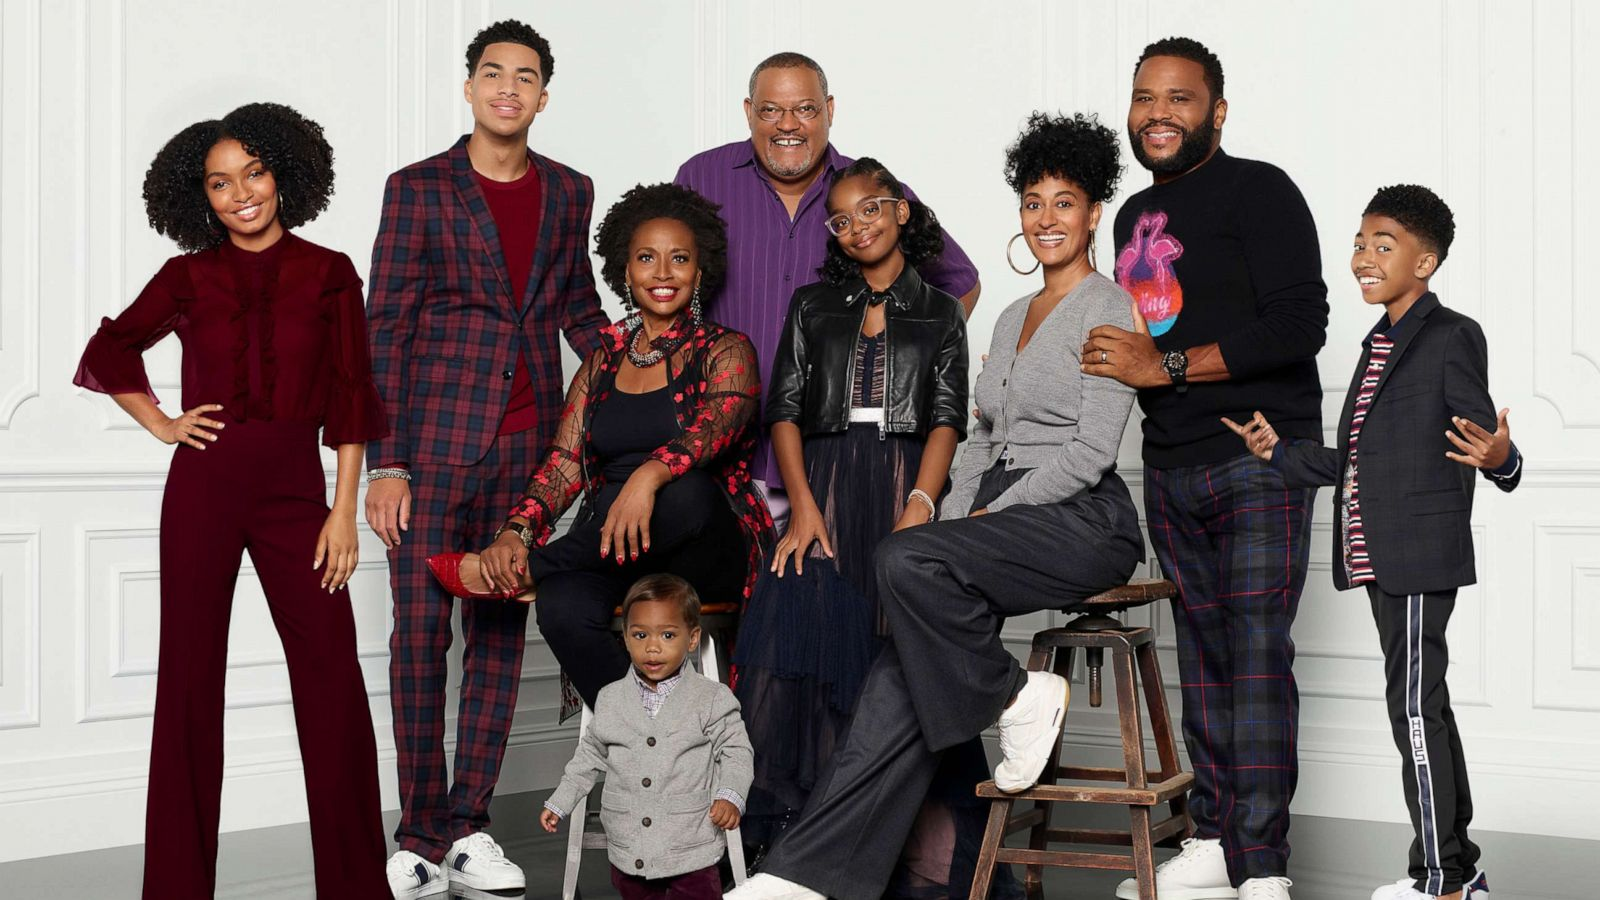 The all-black Blackish cast